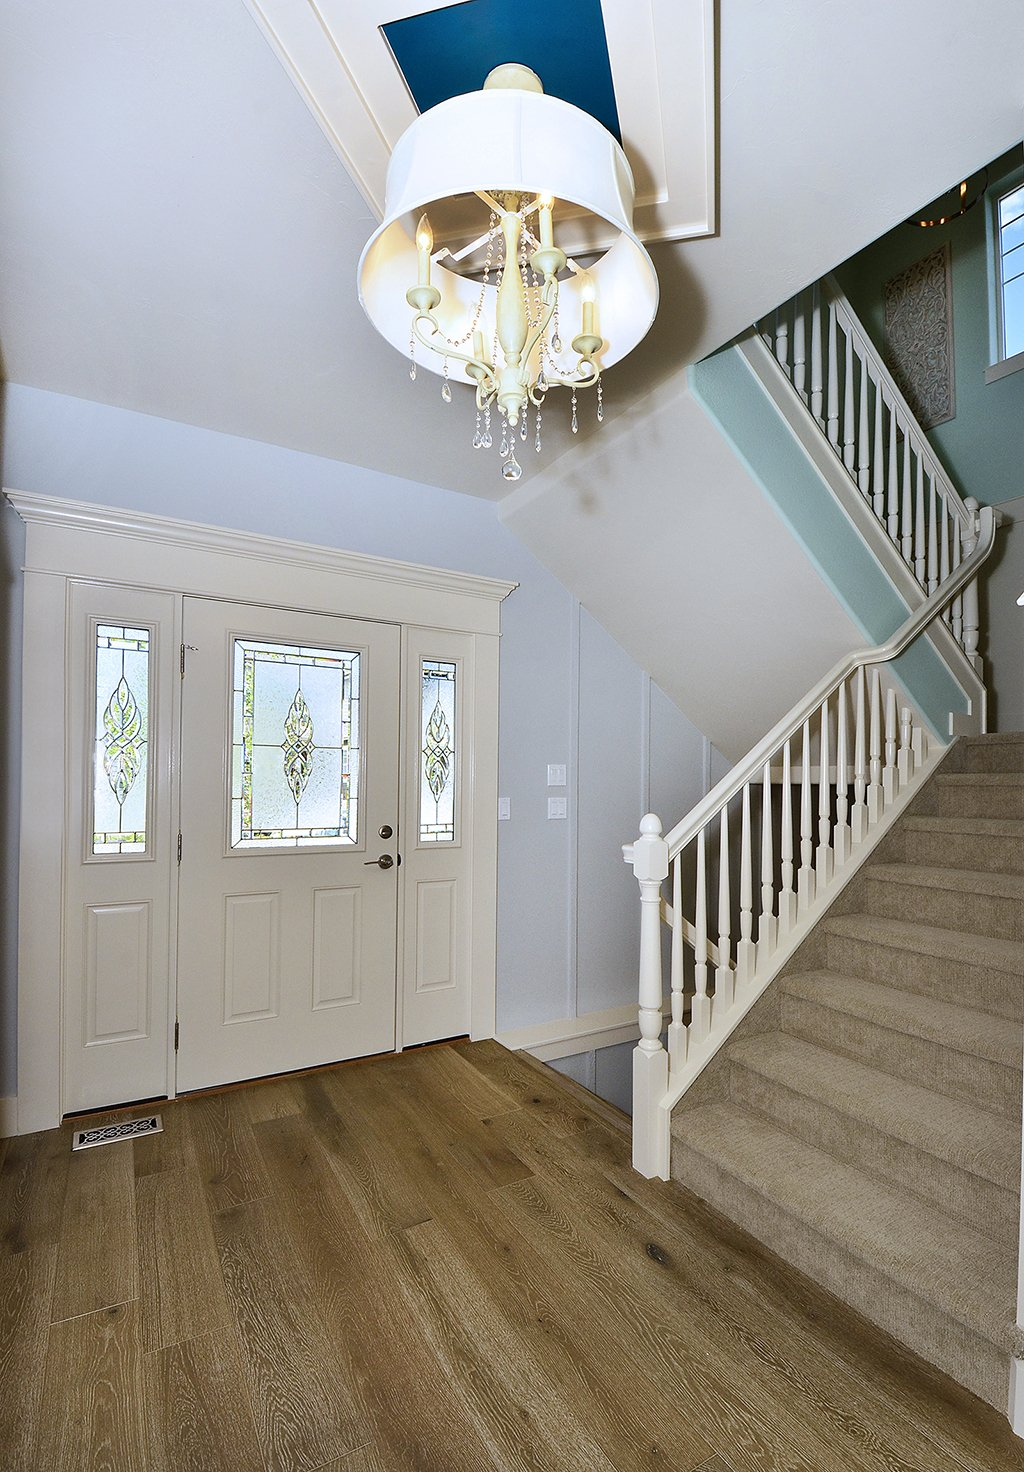 Picture of front door & stairway of 1602 Gold Hill Mesa Dr Colorado Springs CO